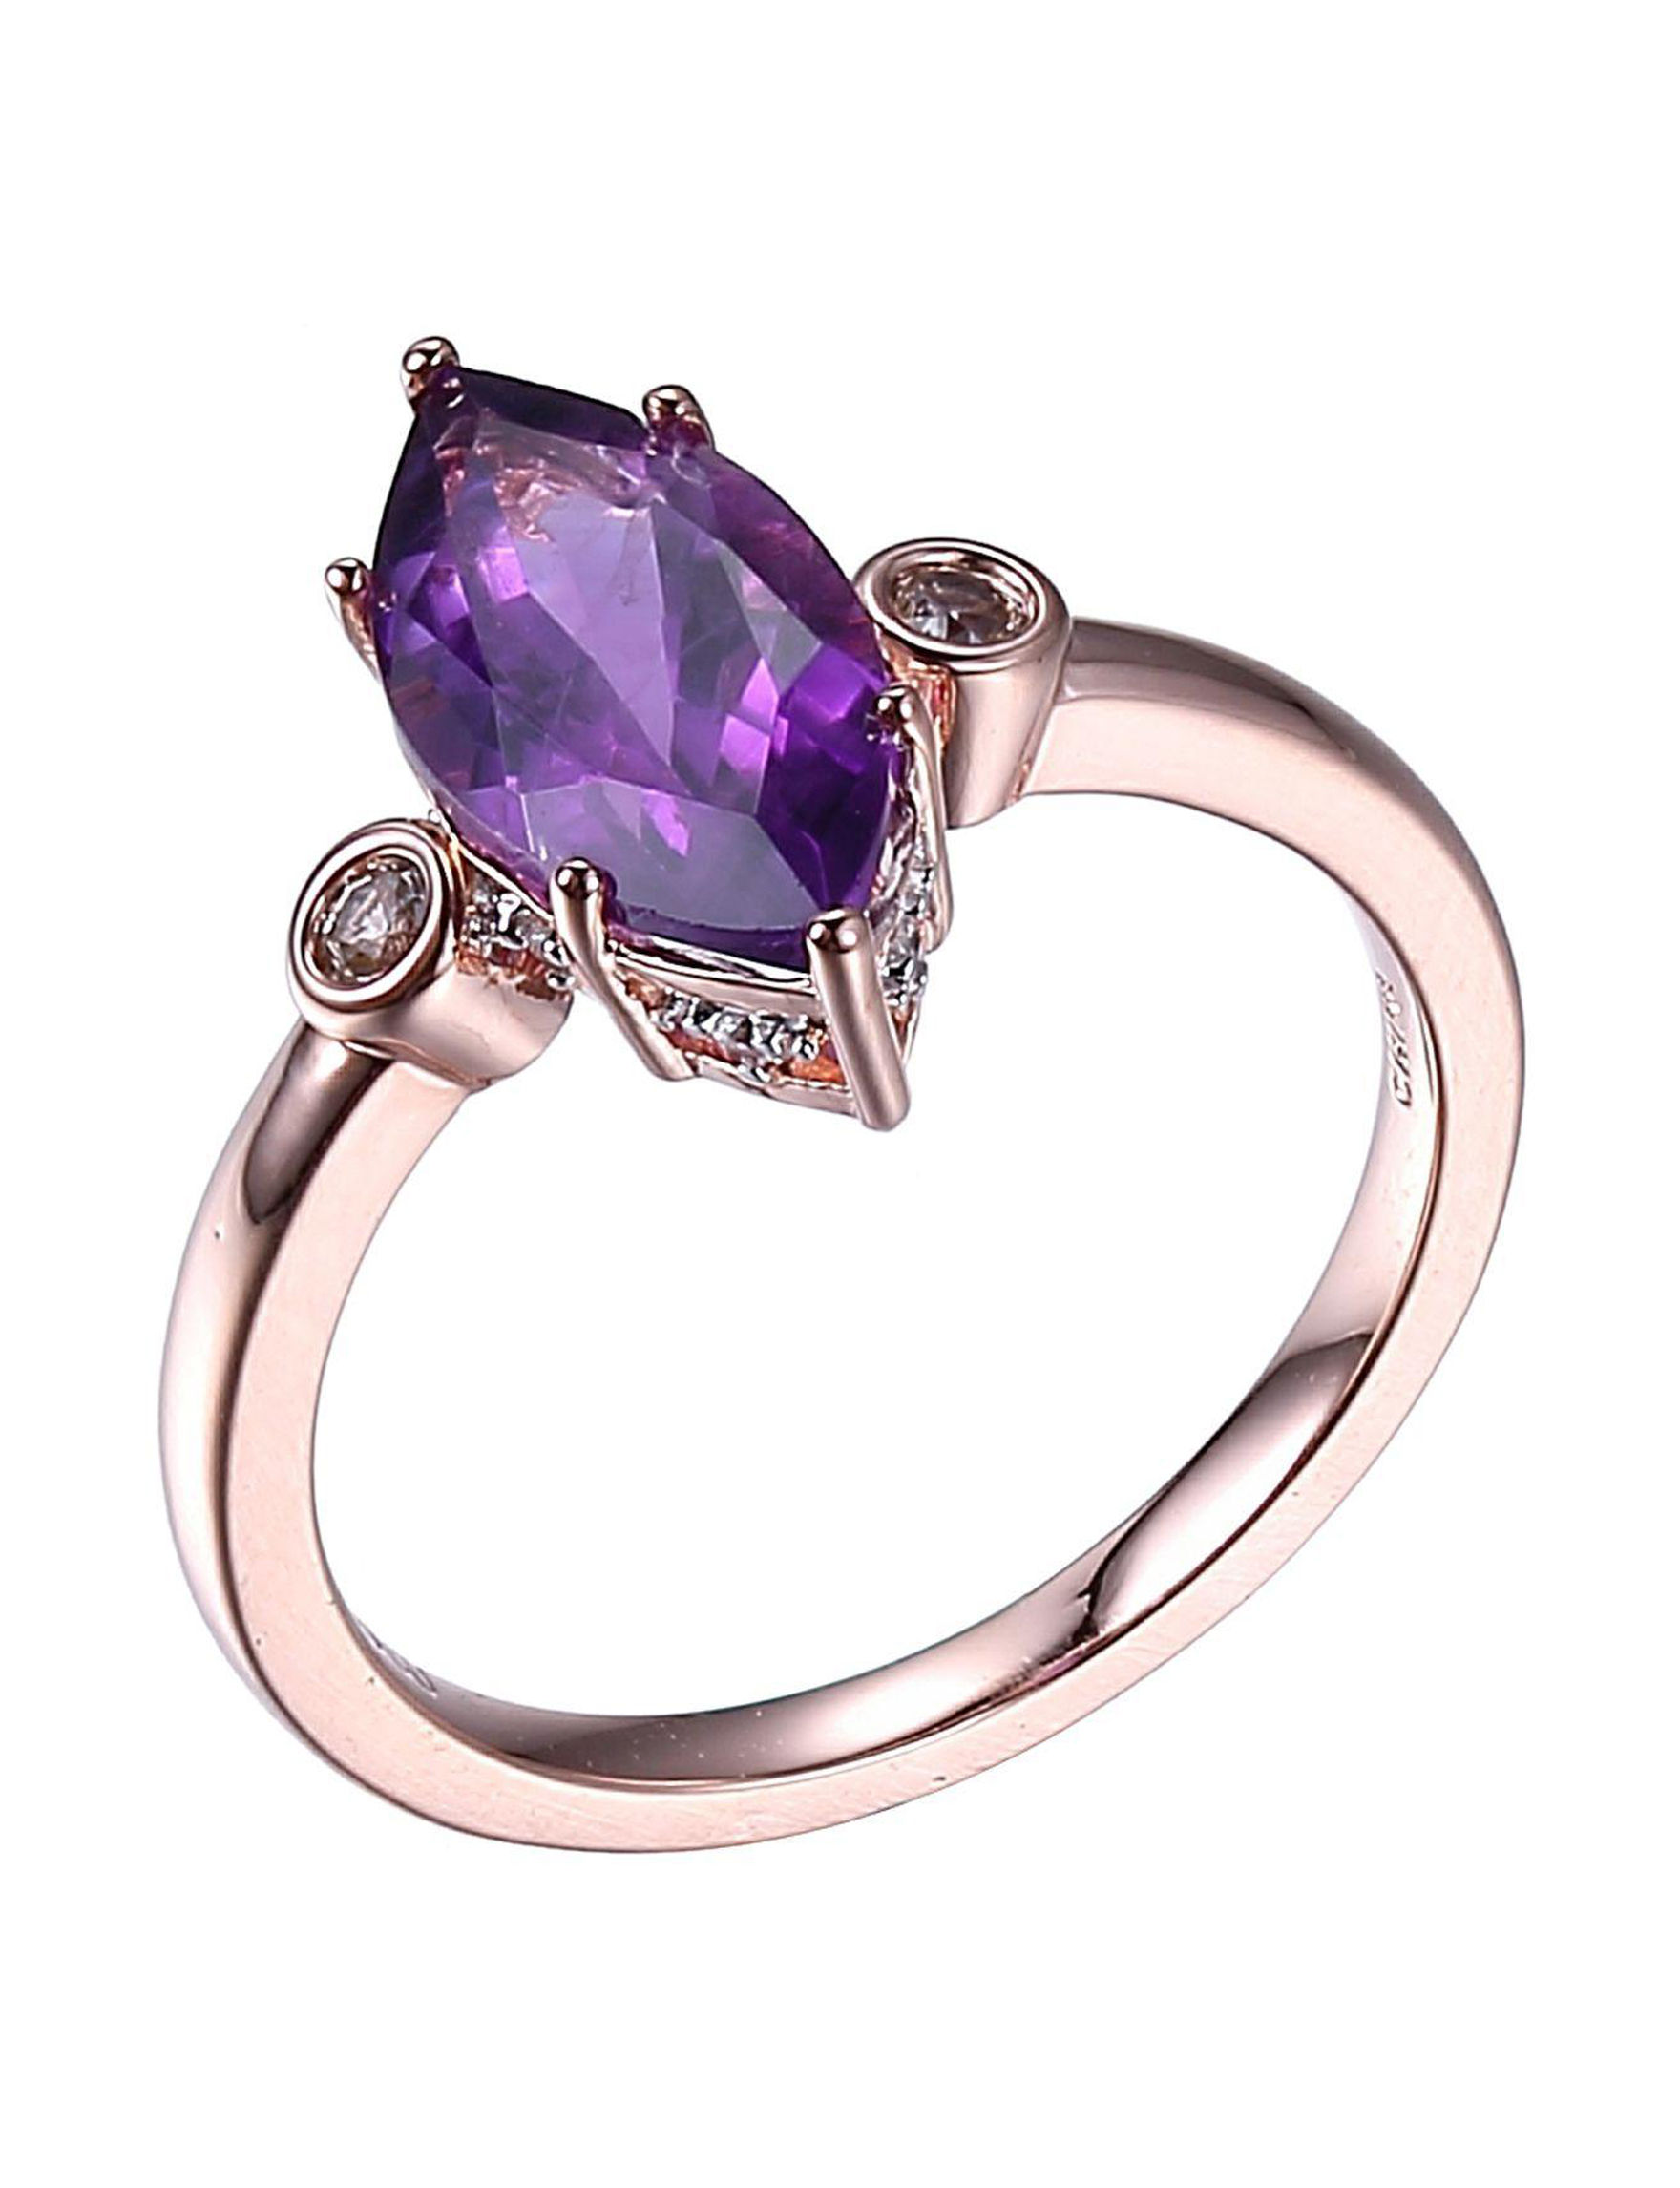 PAJ INC. Amethyst Rings Fine Jewelry